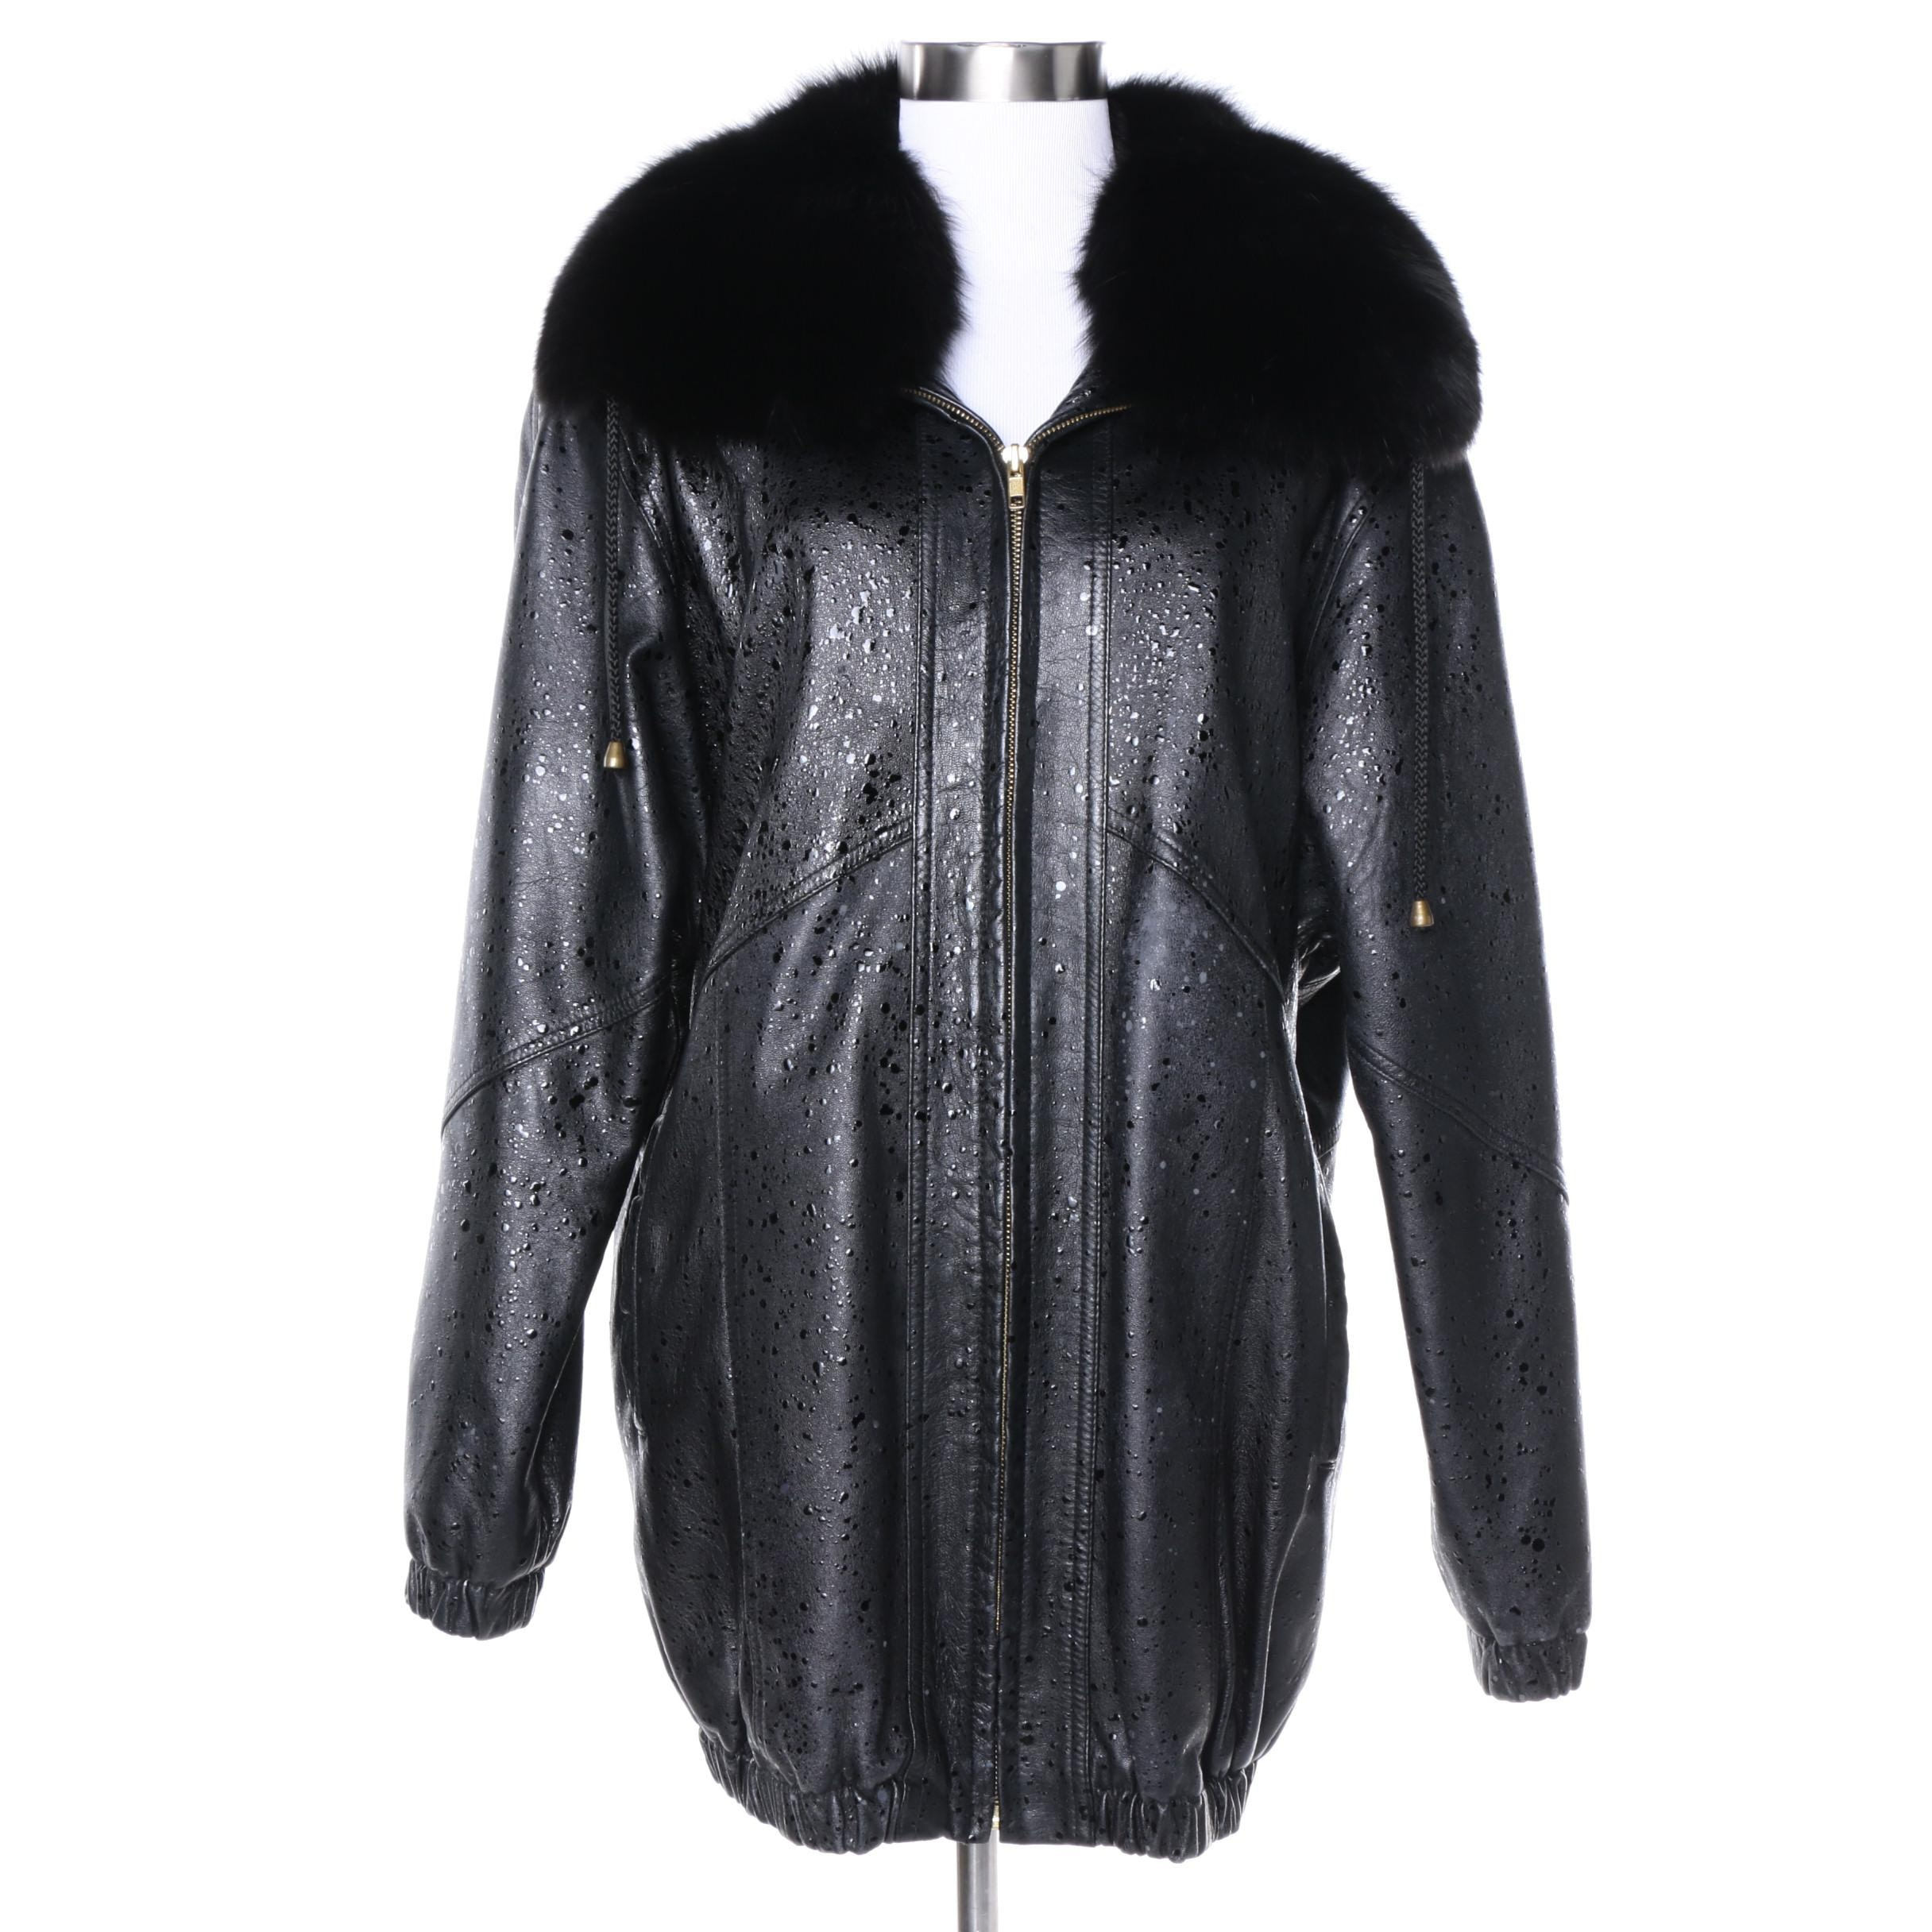 Day Furs Black Leather Coat with Dyed Black Fox Fur Collar